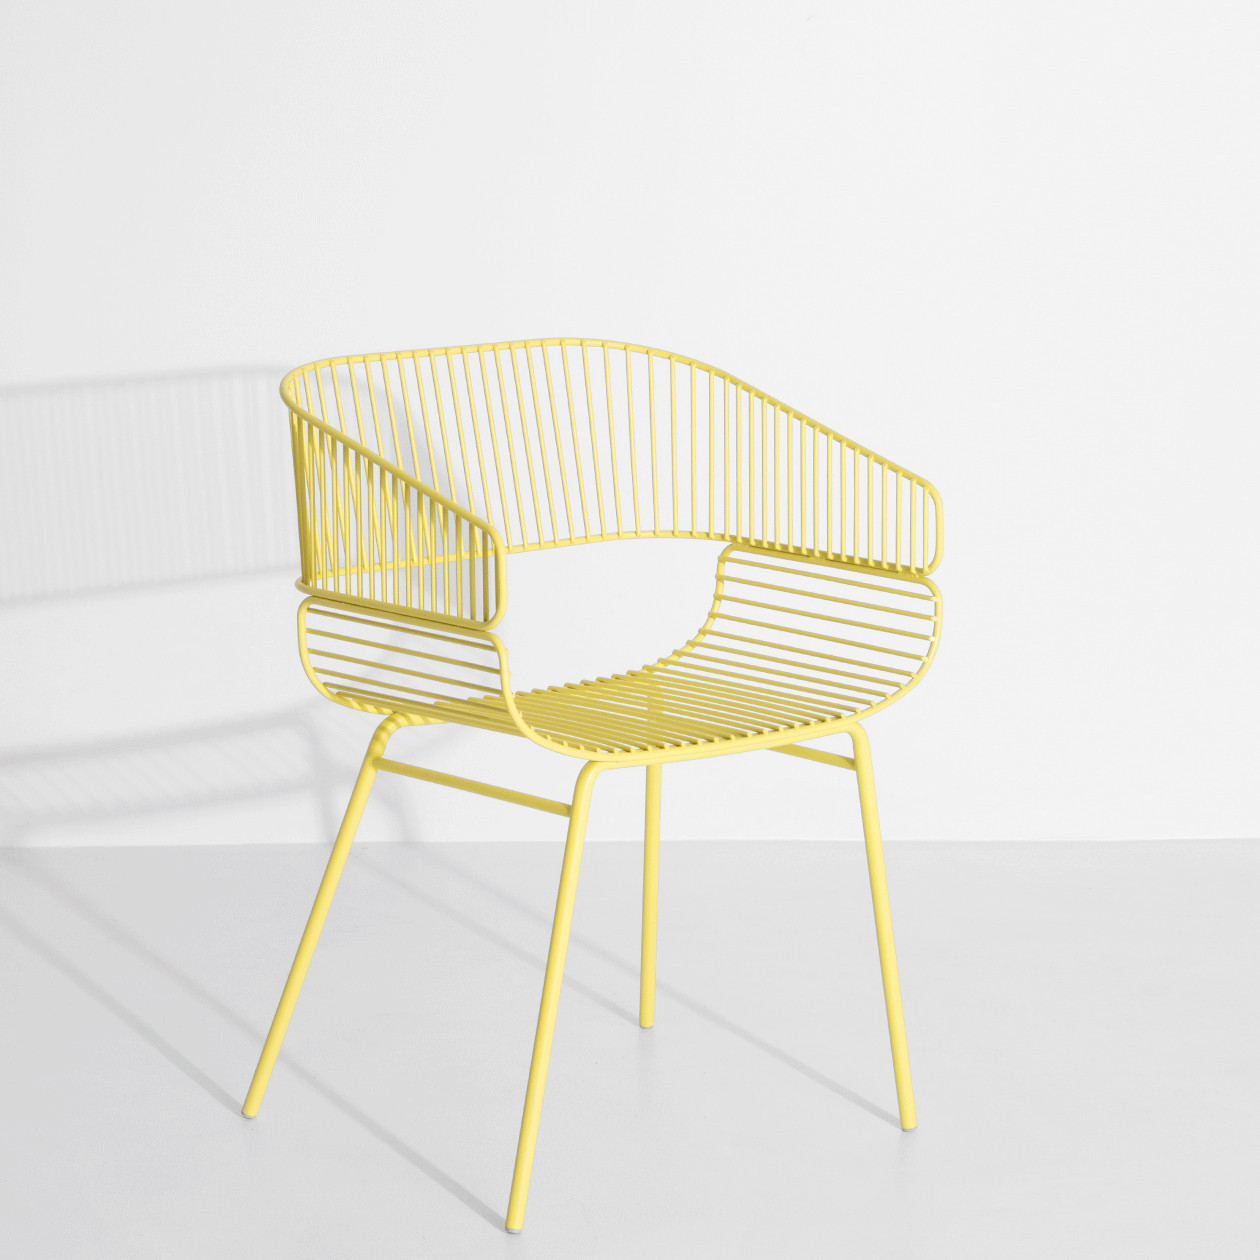 Trame Armchair - Amandine Chhor and Aïssa Logerot sign a new creation for Petite Friture: an armchair with a light and enveloping aspect, that associates curves and rhythms to combine comfort and strength. A cushion can be added for indoor use. A-frame that stretches along two main tracks, coming together to create the seat and back. Taking its place in both interior and exterior the Trame chair plays with opposites of lines and tensions on curves, all in softness, the perception of comfort on a light structure, an air like appearance for a solid chair.    Matter of Stuff